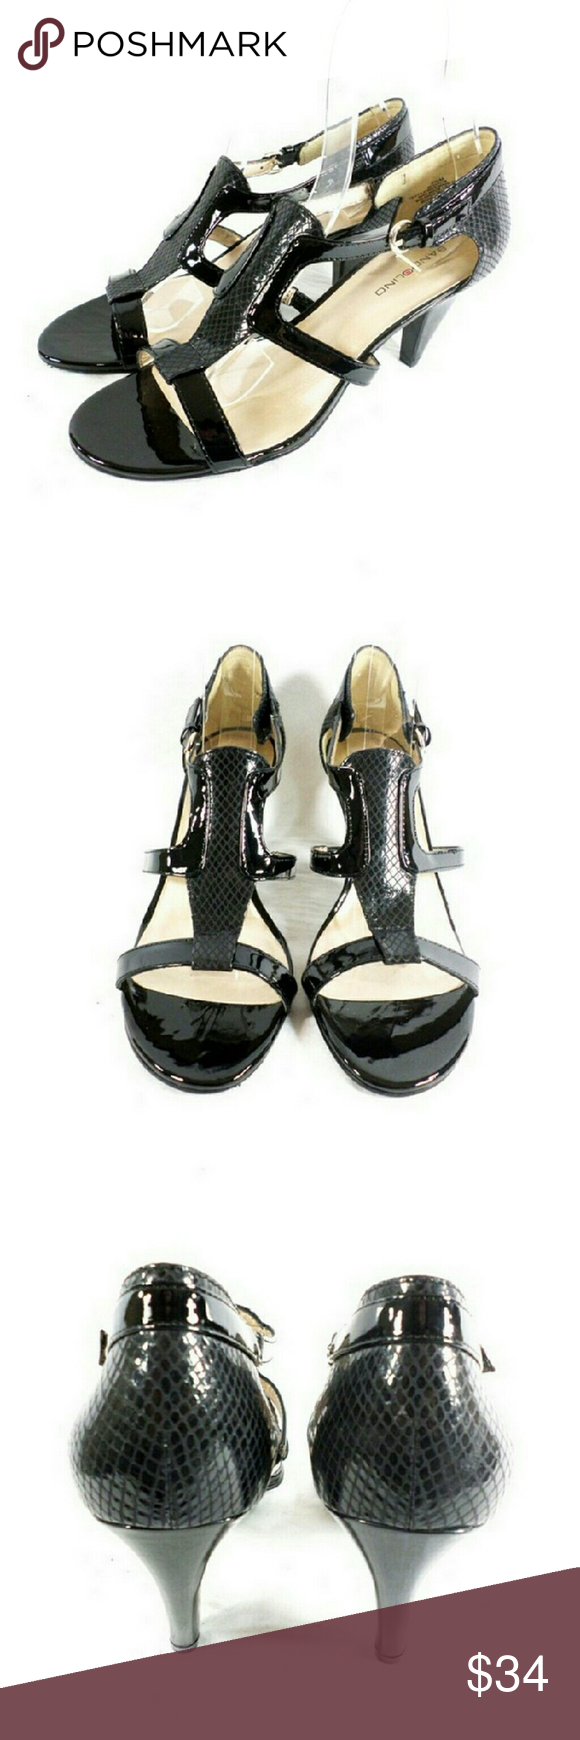 """Bandolino Dacia Black Dress Sandals Thanks for checking out my closet. I take all my own pics. The shoes are authentic and new in box. The shoes have man made upper with 3.5"""" heel. Bandolino Shoes Sandals"""